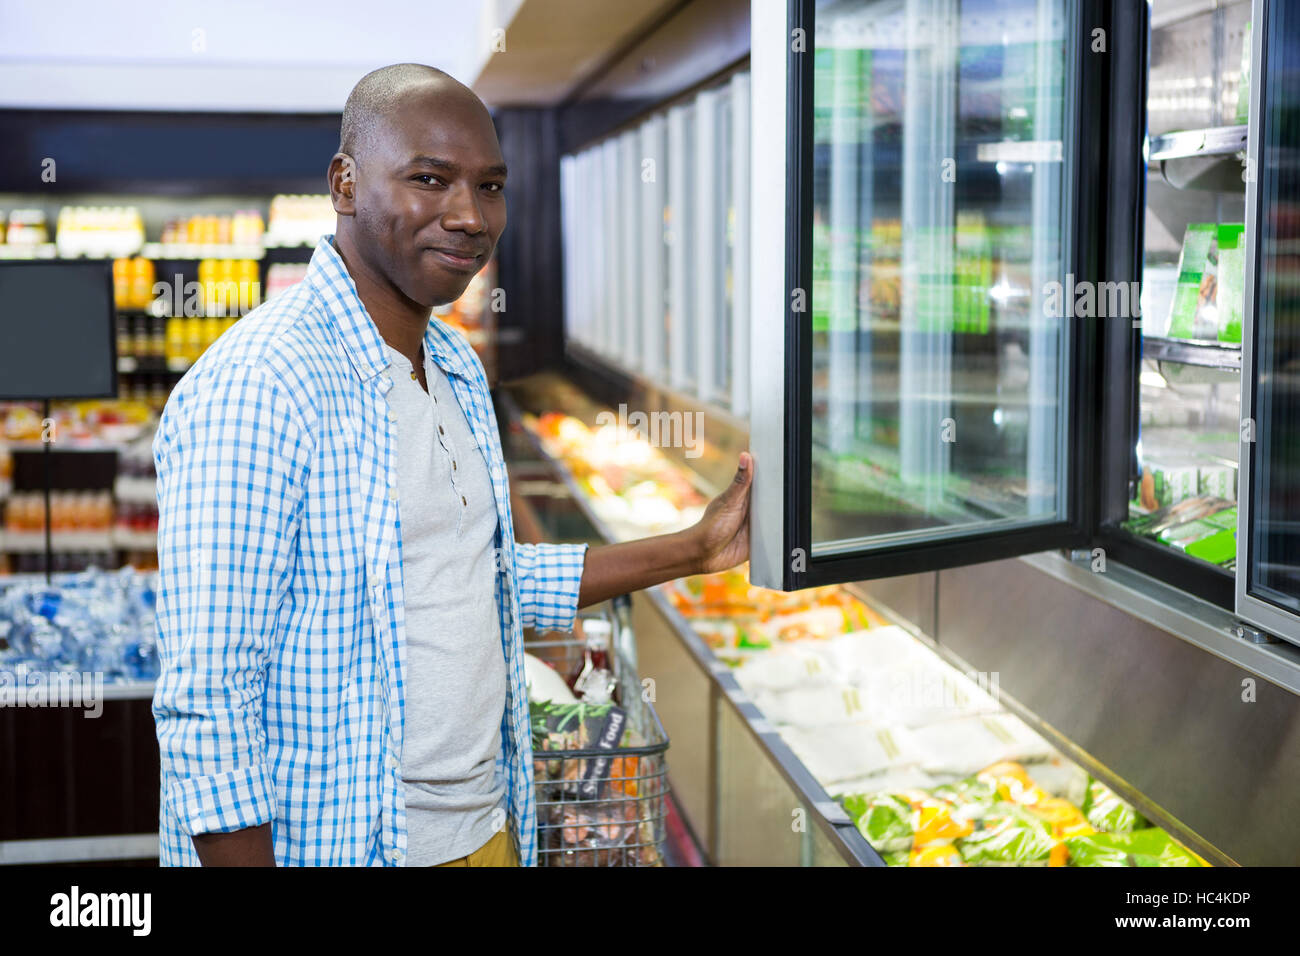 Man shopping in grocery section at supermarket - Stock Image